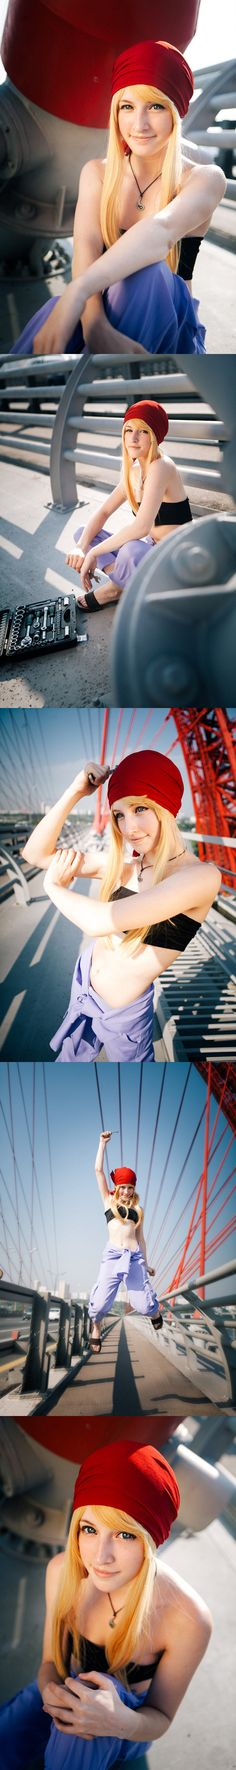 Winry #cosplay from Fullmetal Alchemist